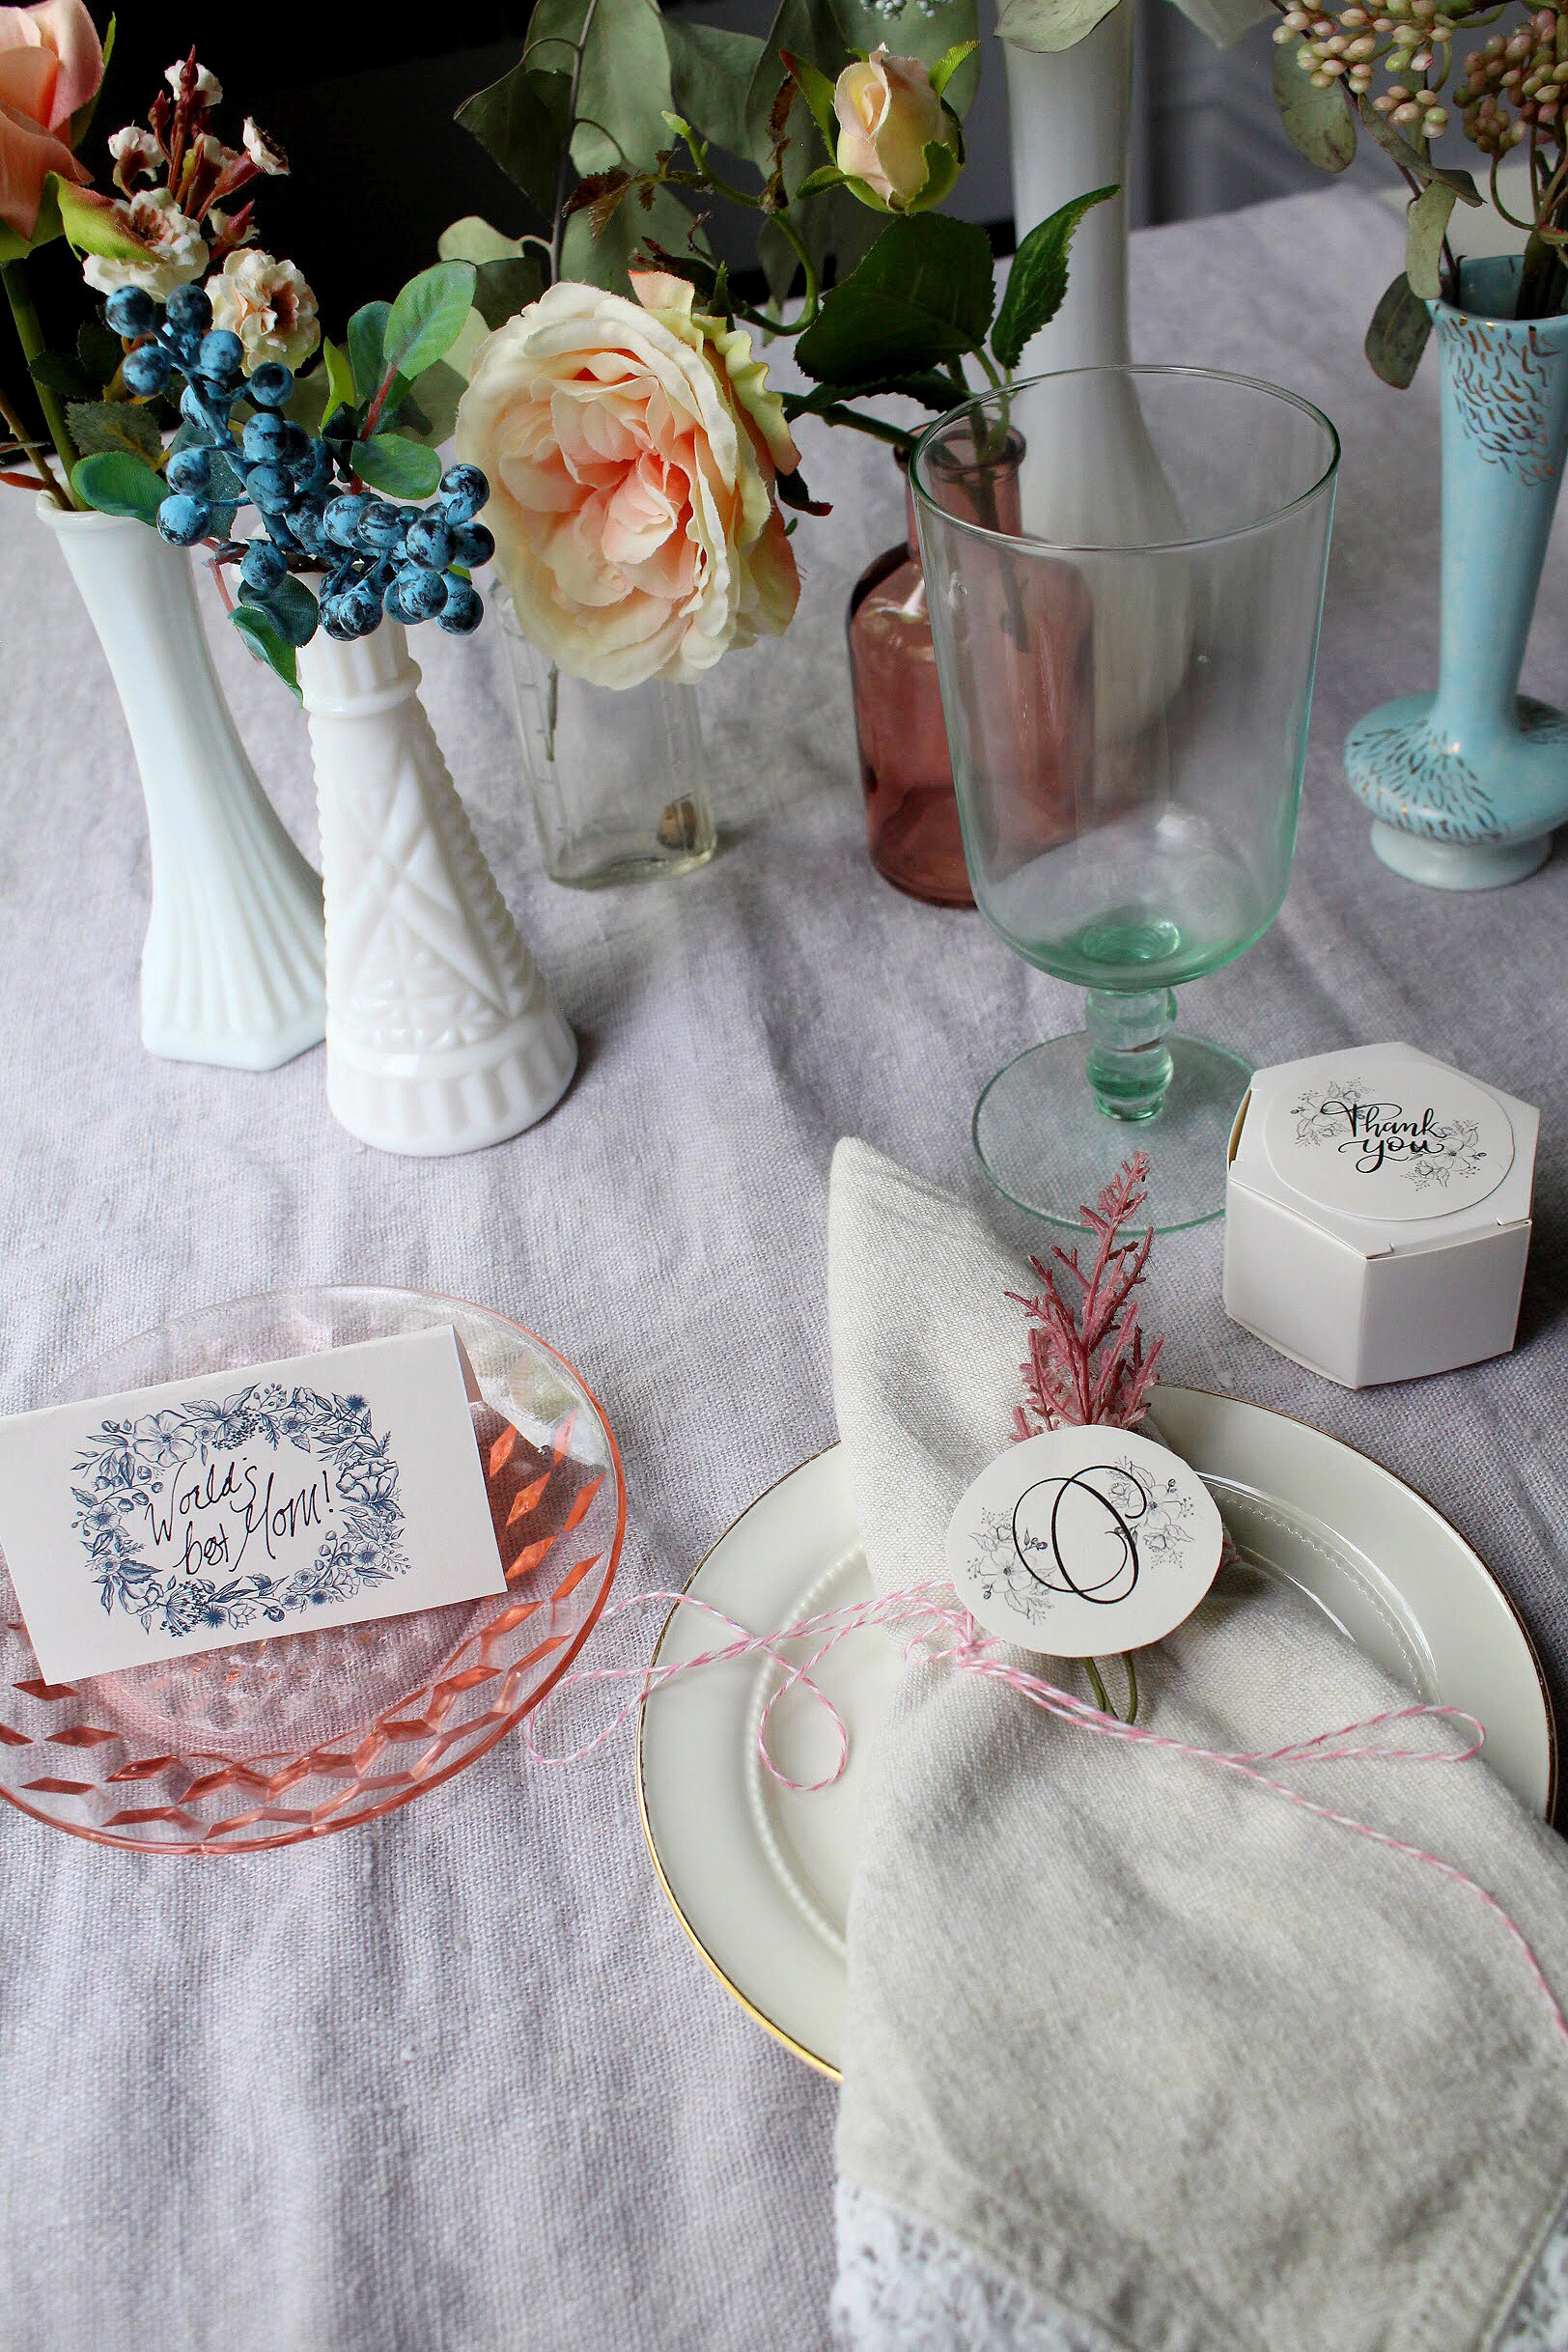 Wedding Downloads for your Mother's Day place setting